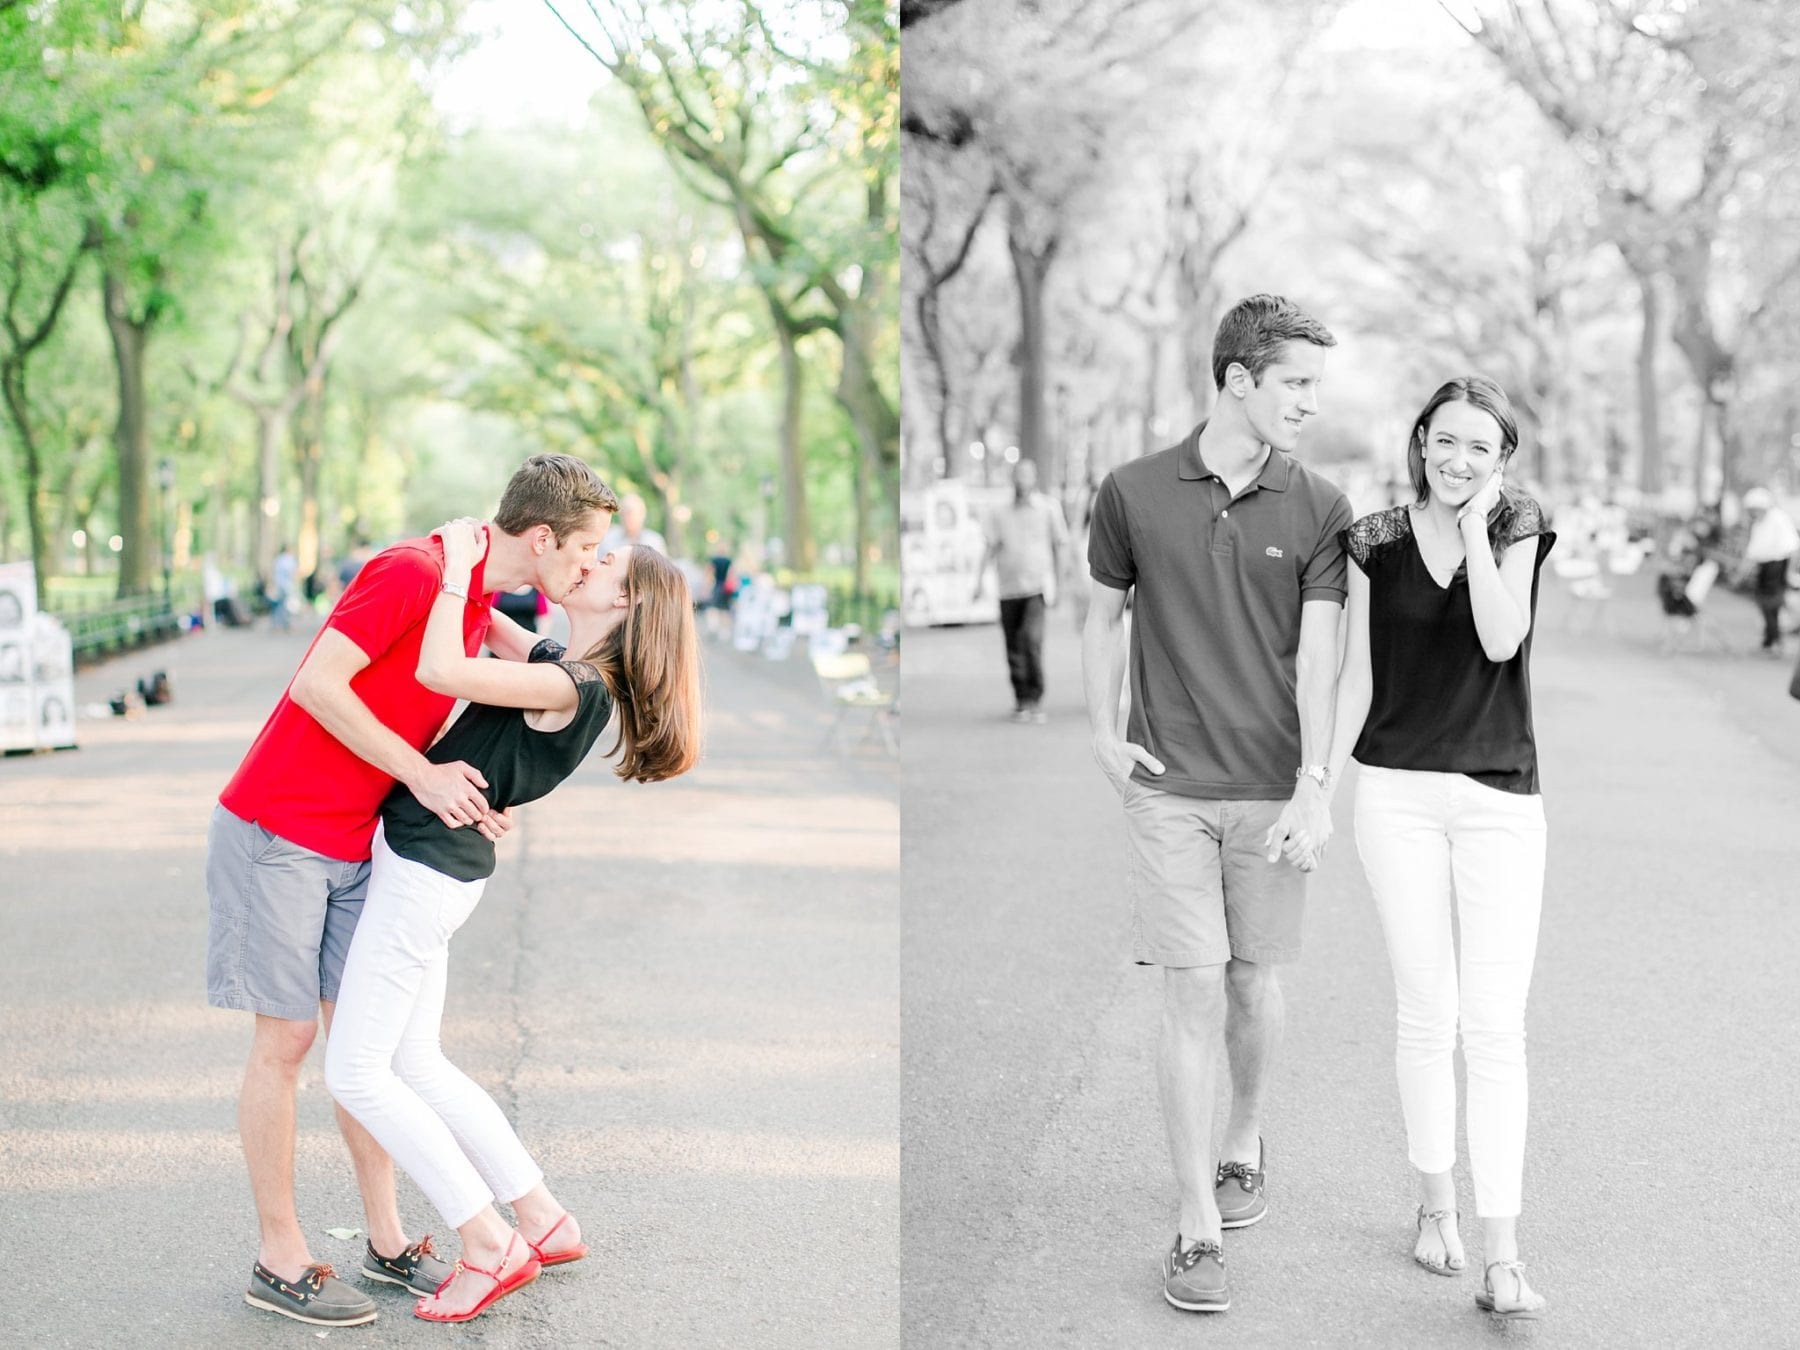 West Village Central Park Engagement Photos NYC Wedding Photographer Megan Kelsey Photography-227.jpg